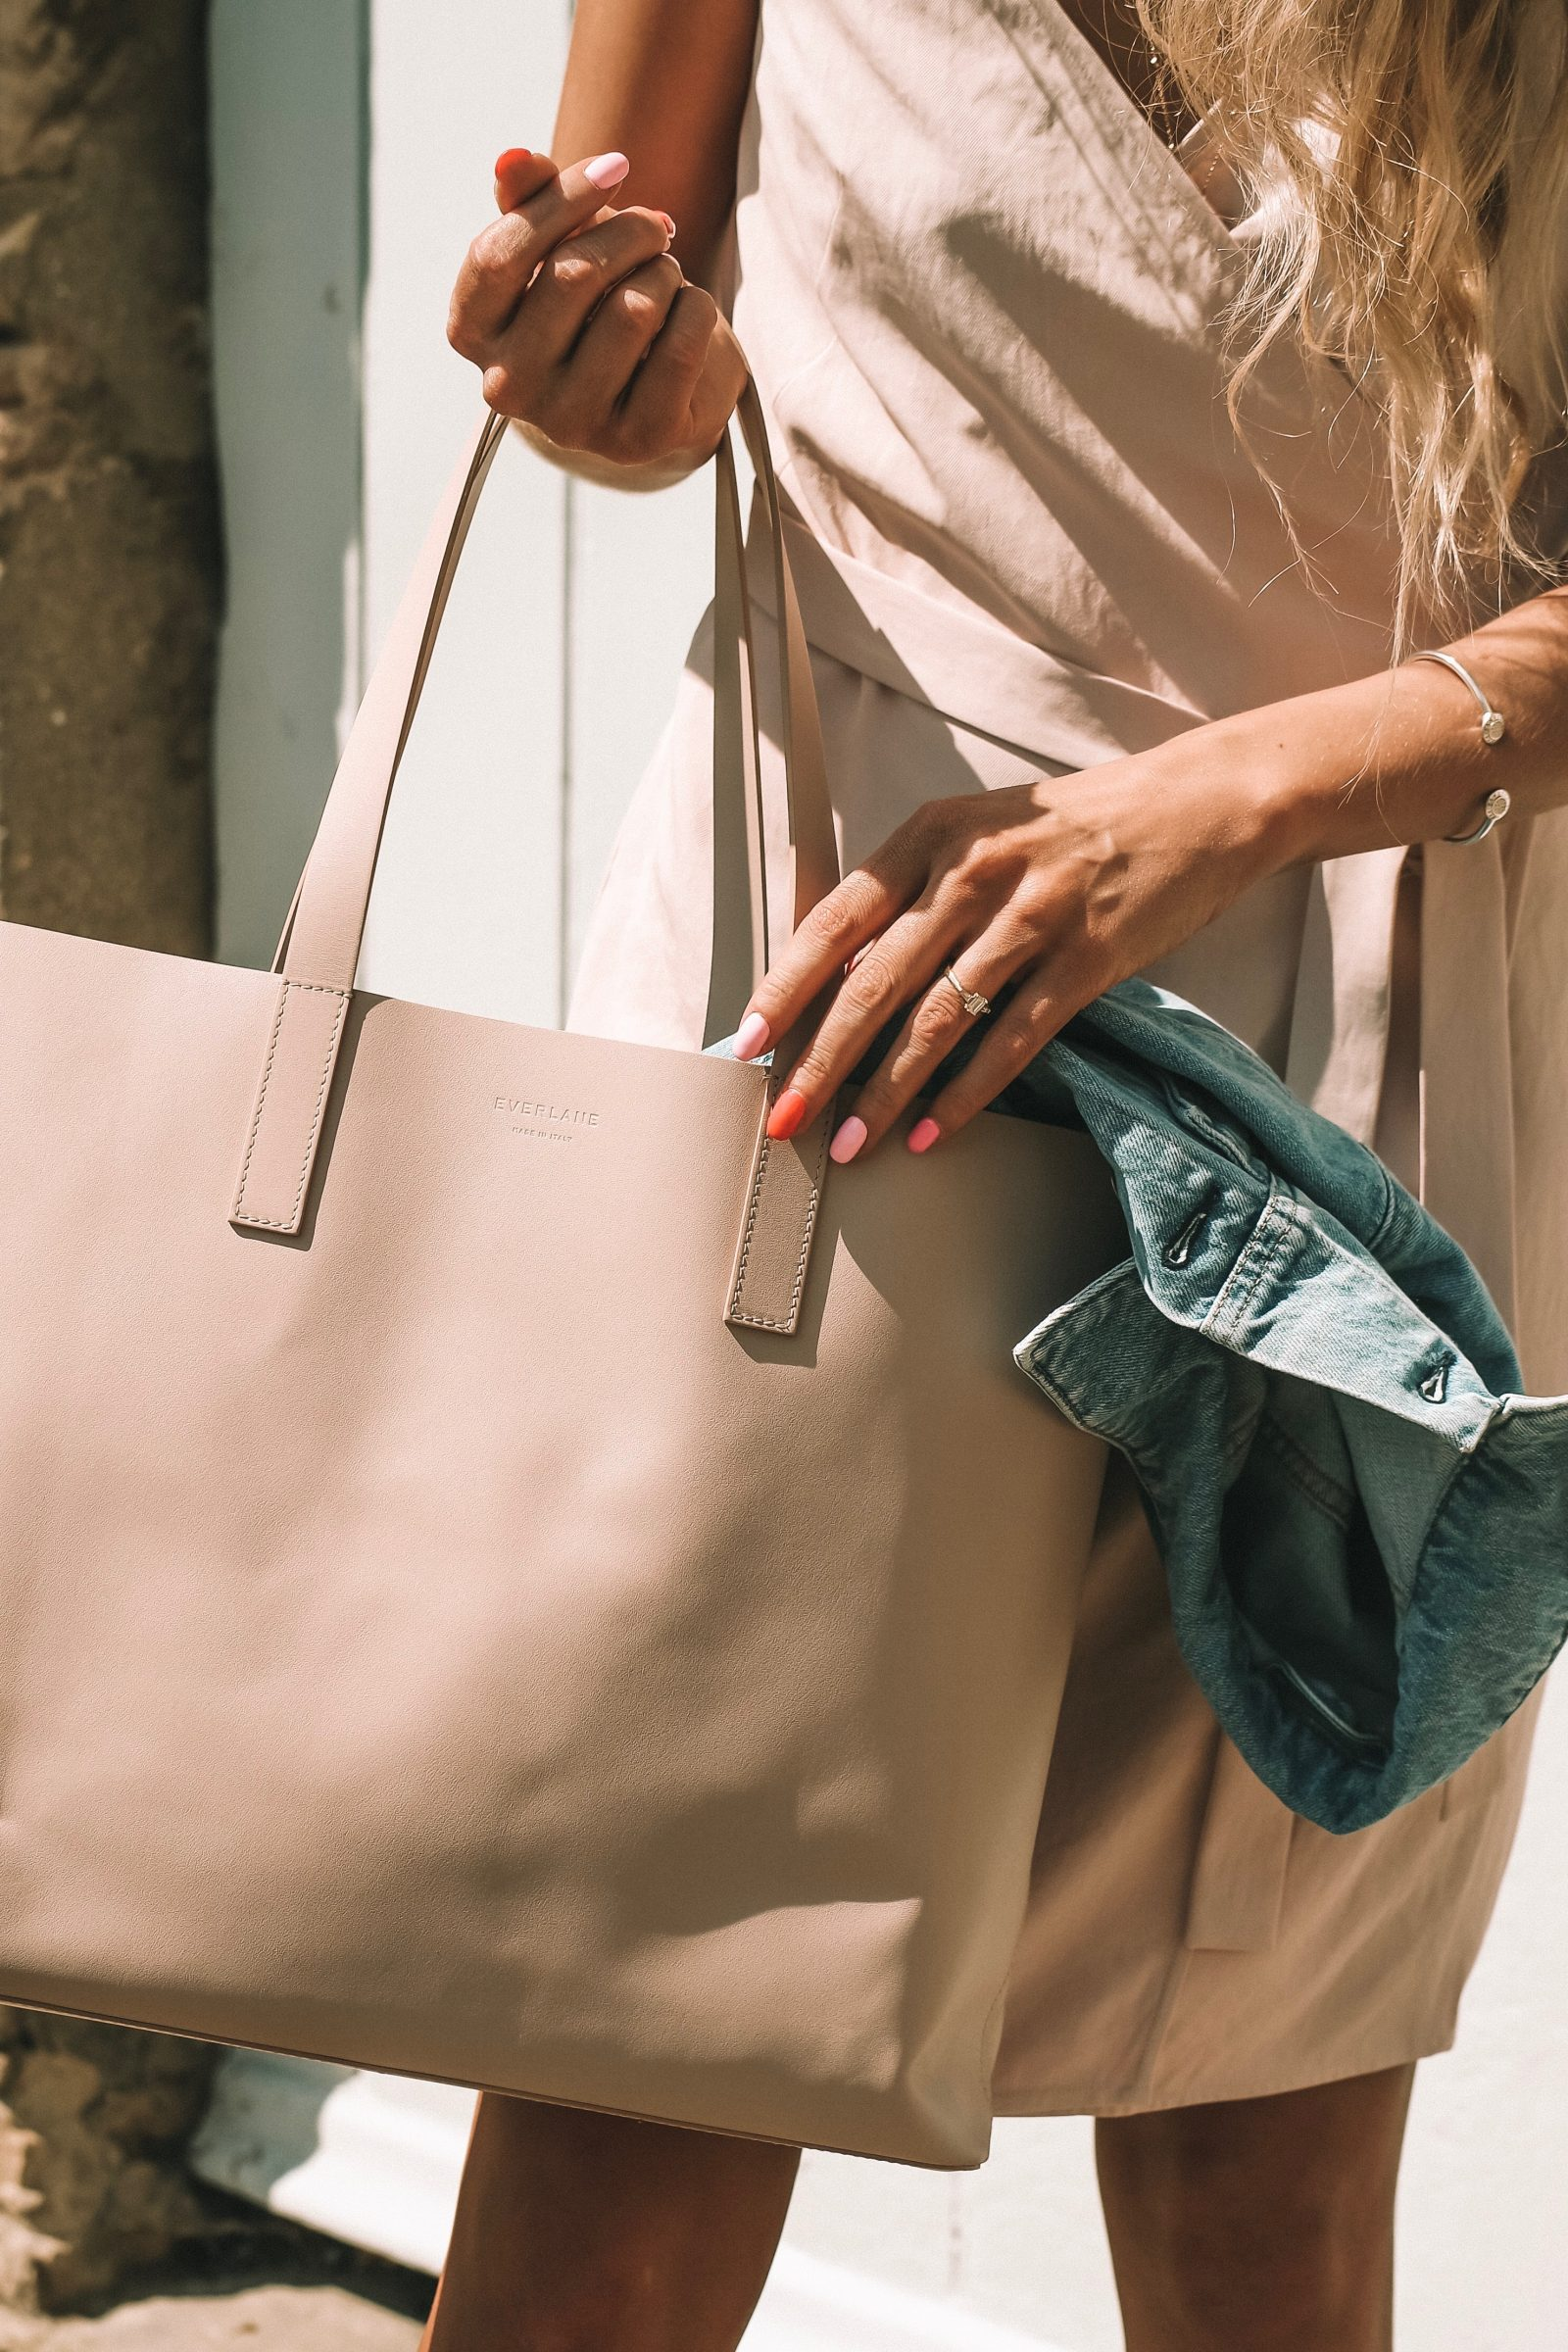 Leather Everlane Day Market Tote - Summer Style